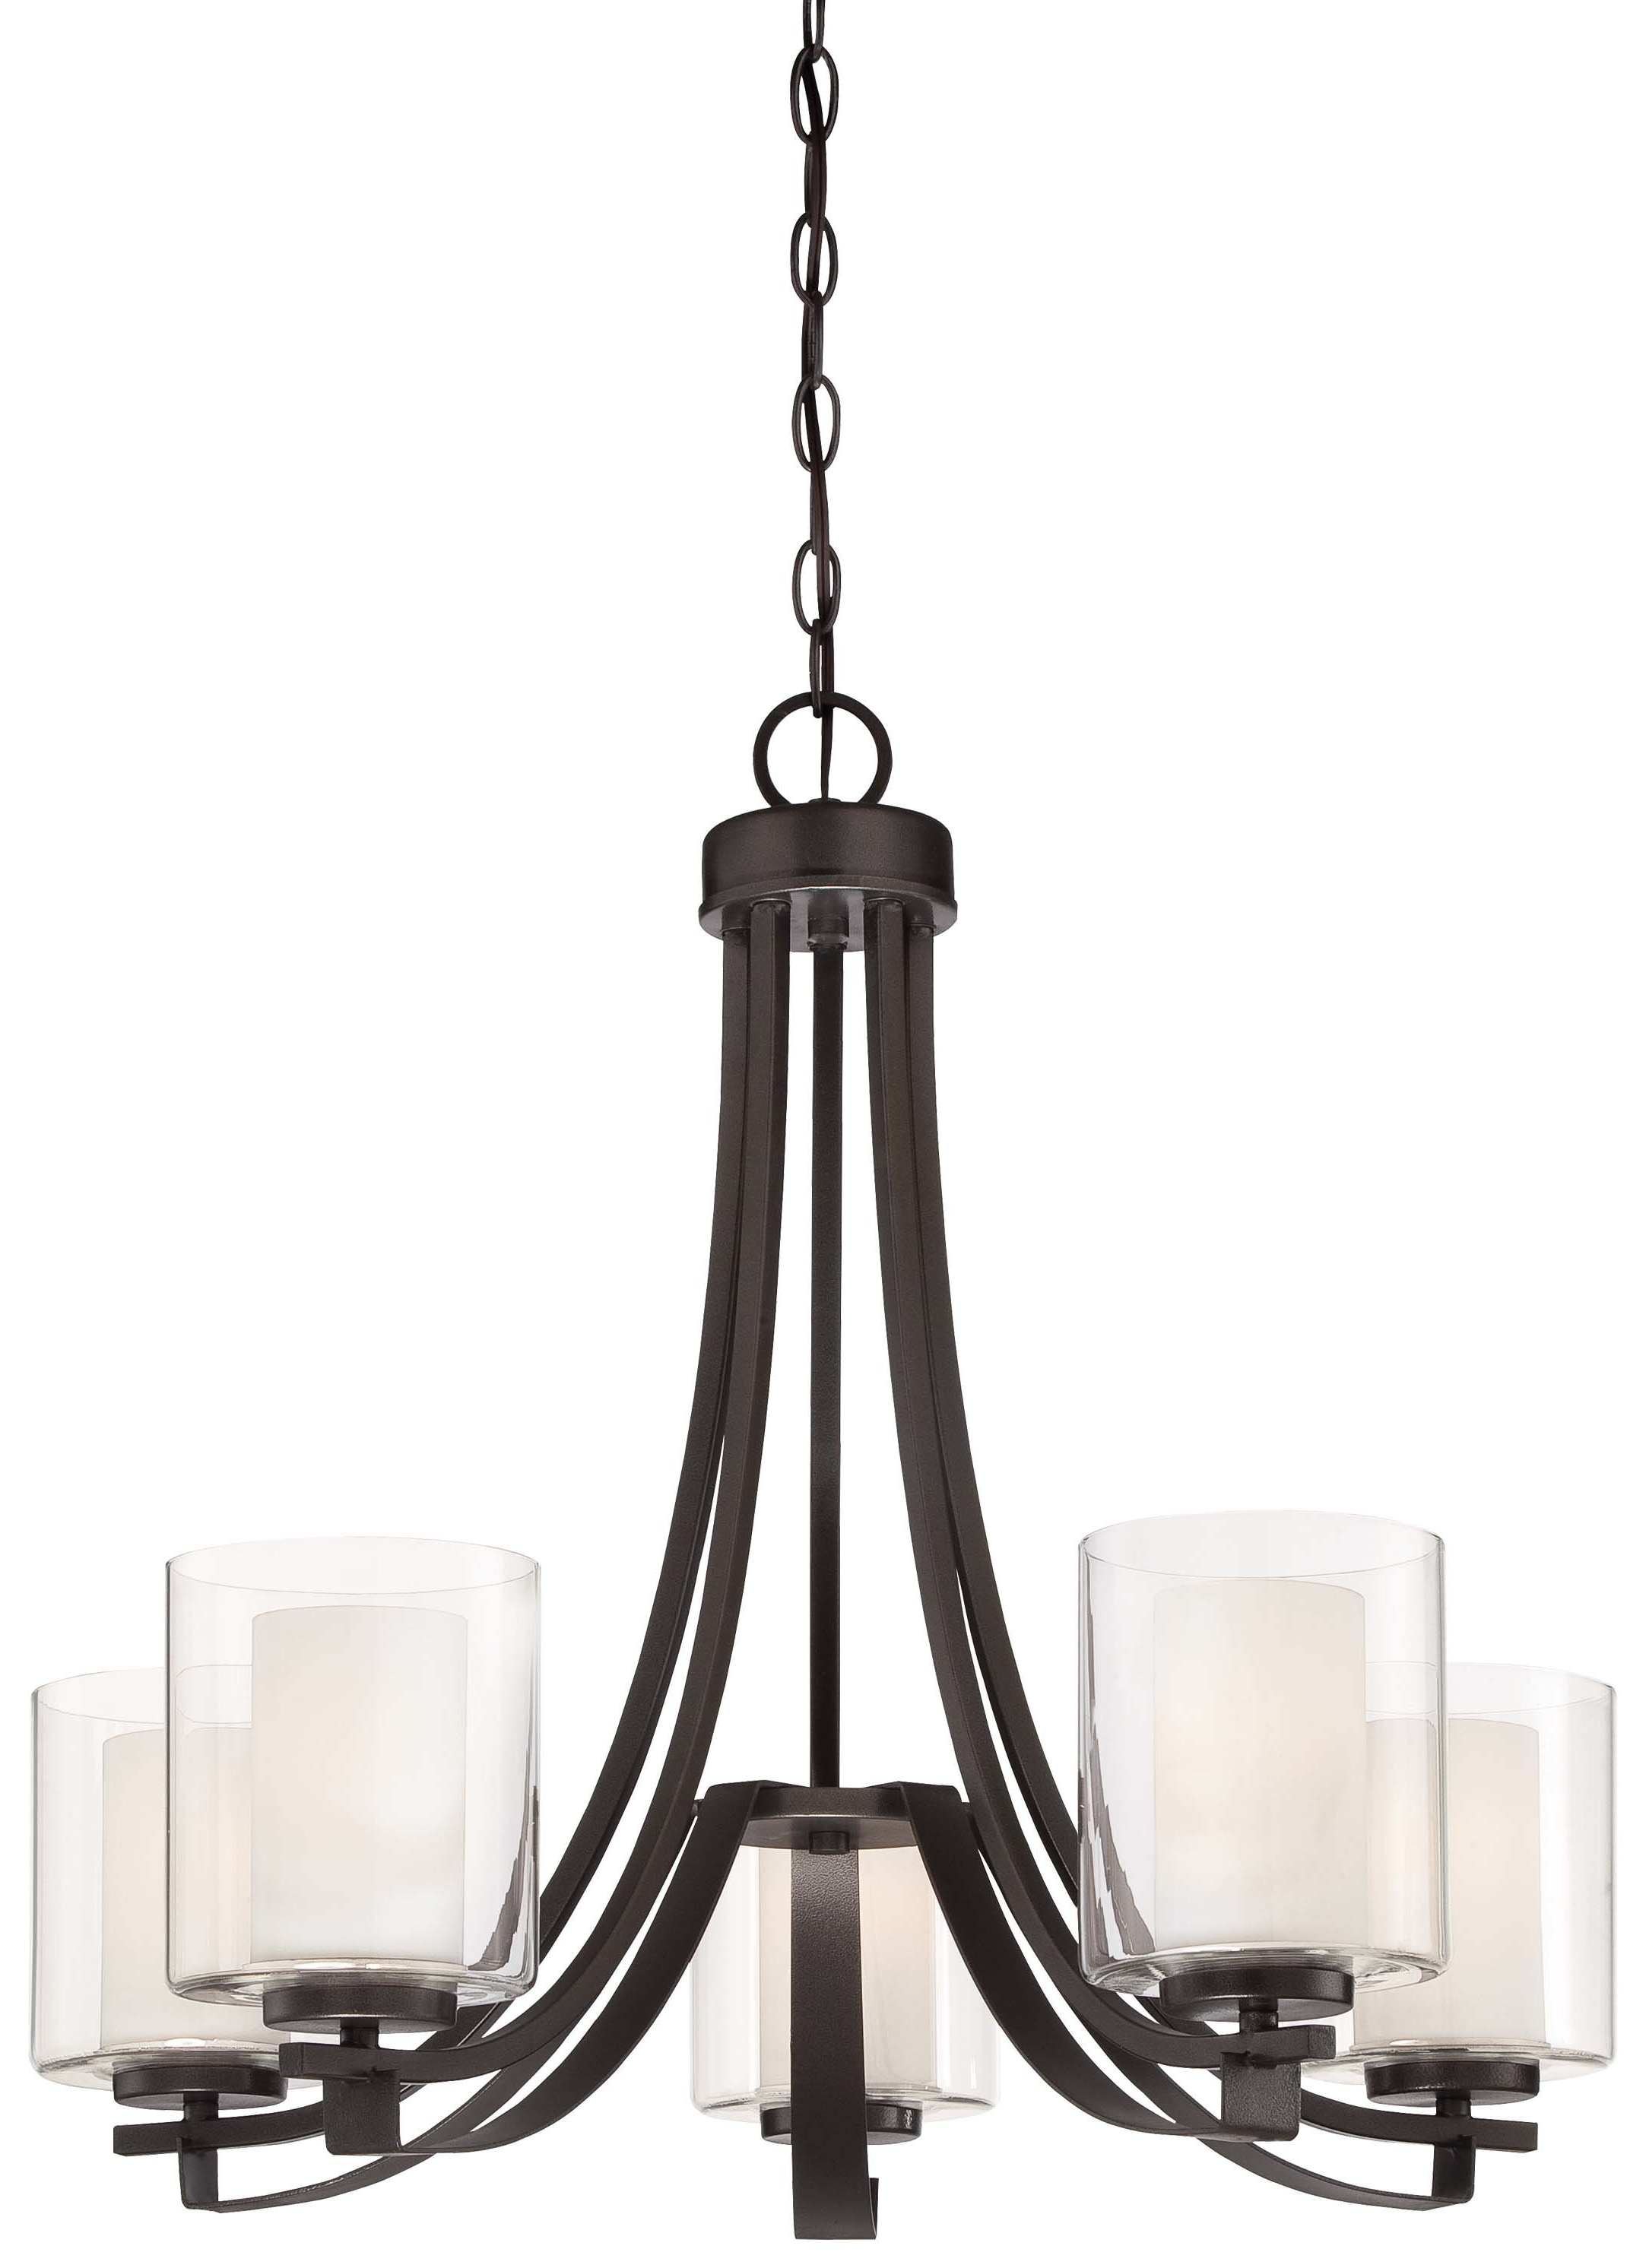 Ebern Designs Demby 5 Light Shaded Chandelier Inside Fashionable Hayden 5 Light Shaded Chandeliers (View 10 of 20)